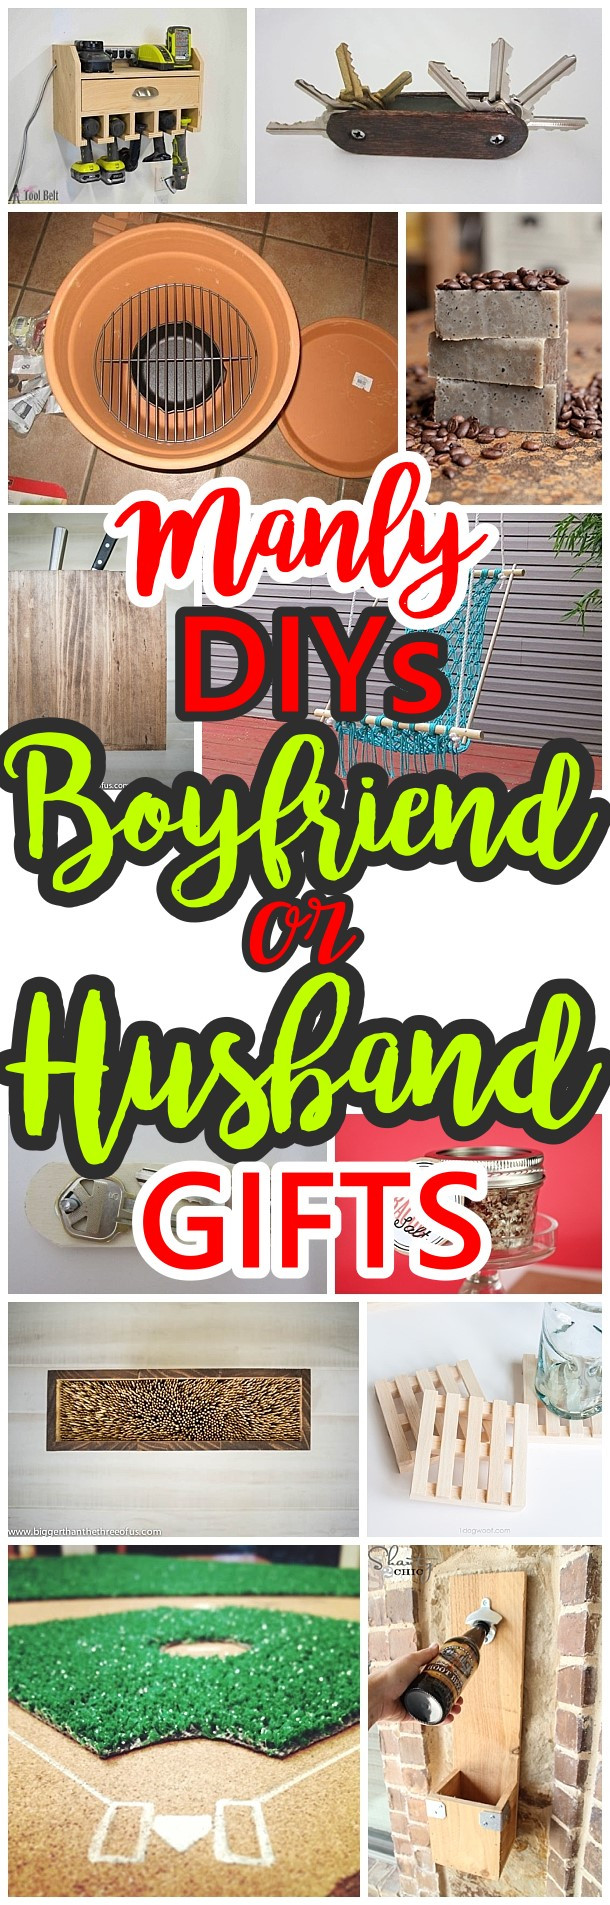 Best ideas about DIY Christmas Gift For Husband . Save or Pin Manly Do It Yourself Boyfriend and Husband Gift Ideas Now.